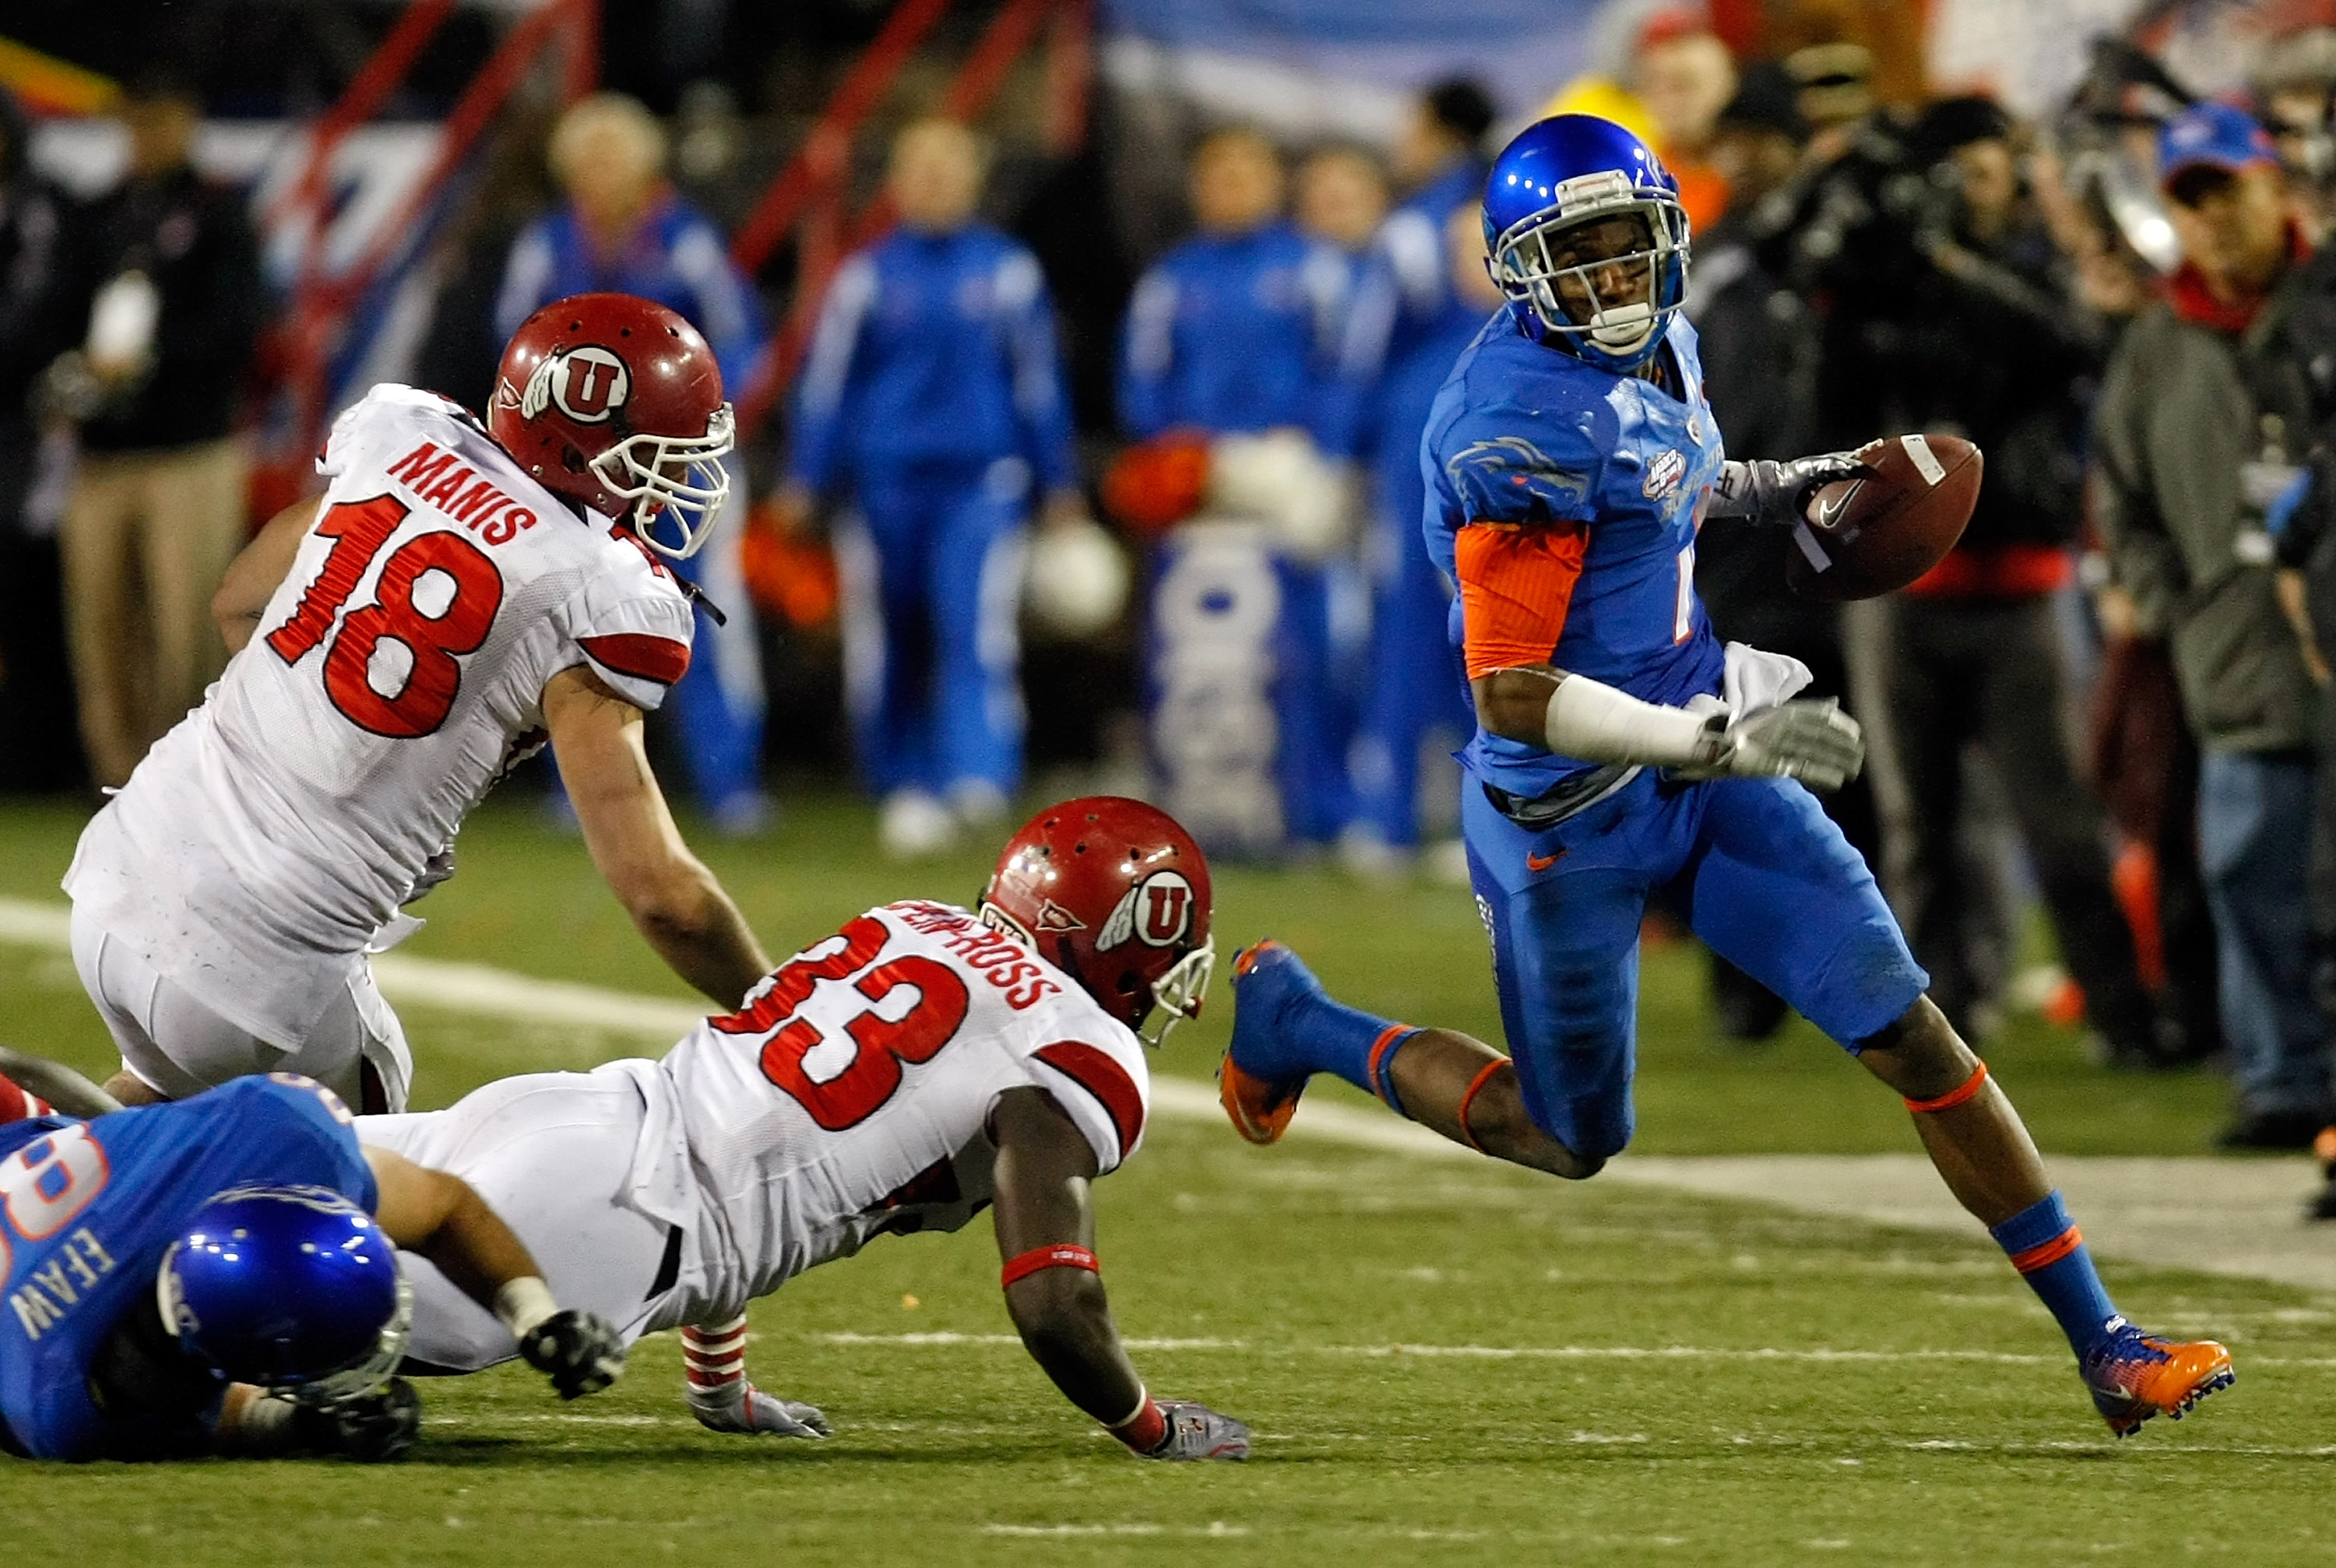 LAS VEGAS, NV - DECEMBER 22:  Titus Young #1 of the Boise State Broncos runs for yardage around Chad Manis #18 and Justin Taplin-Ross #33 of the Utah Utes during the MAACO Bowl Las Vegas at Sam Boyd Stadium December 22, 2010 in Las Vegas, Nevada. Boise St